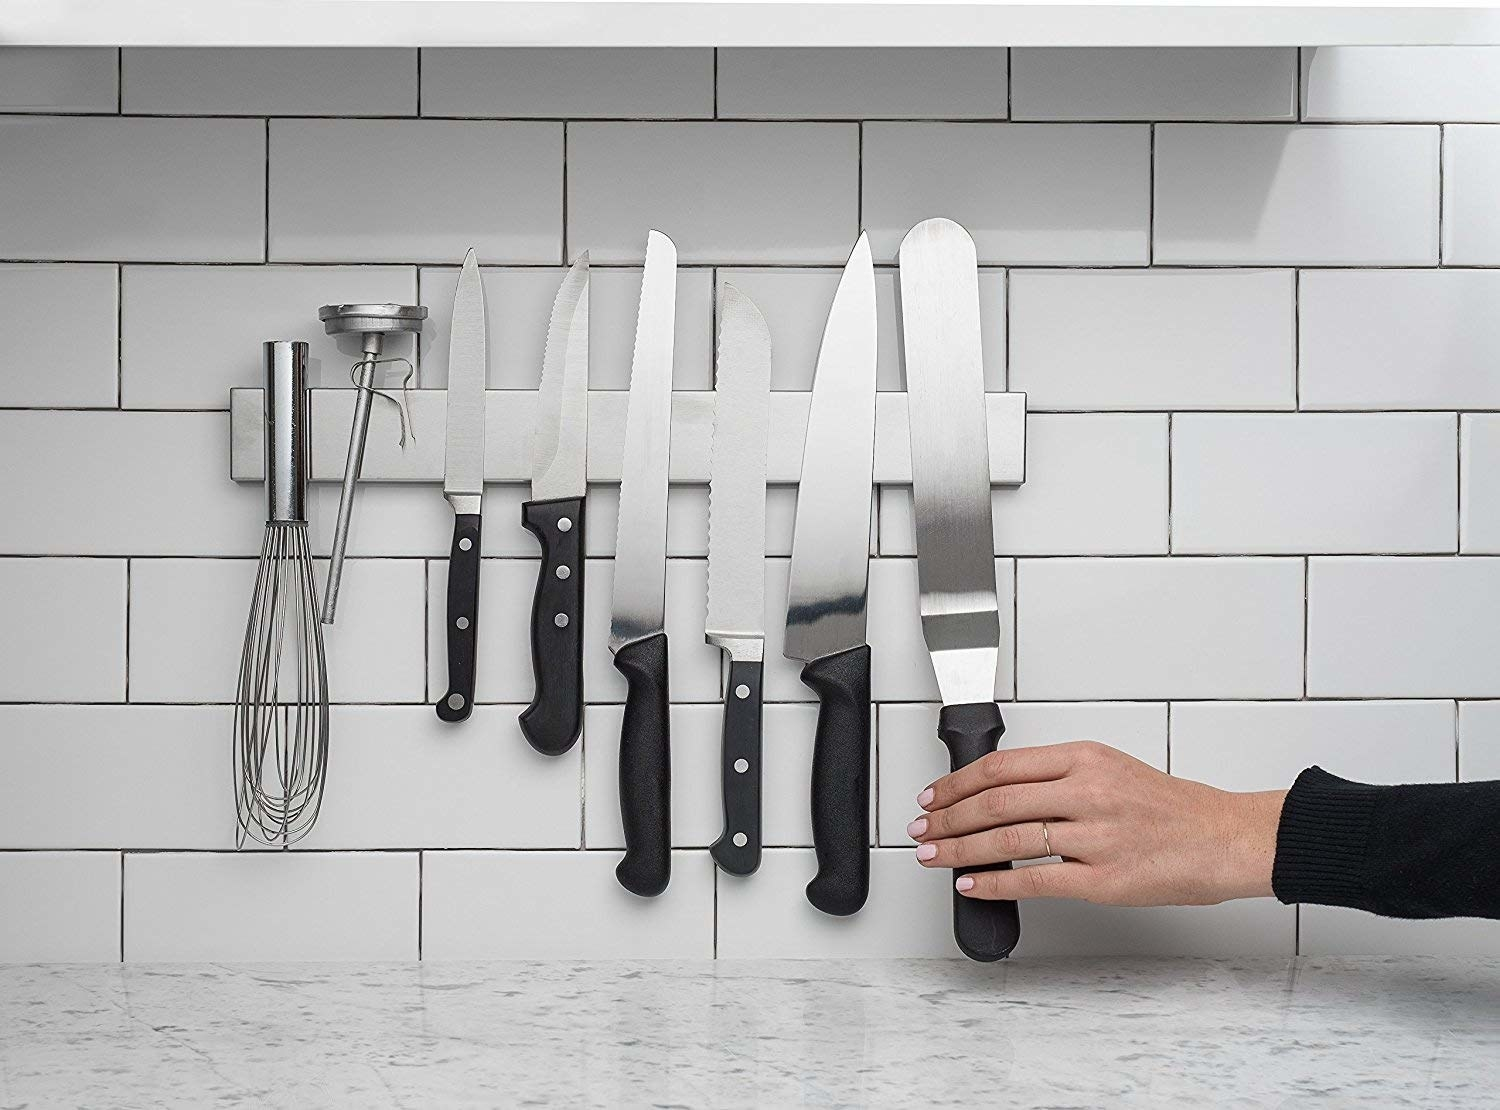 A hand placing a knife against the magnetic knife strip mounted on a tile wall